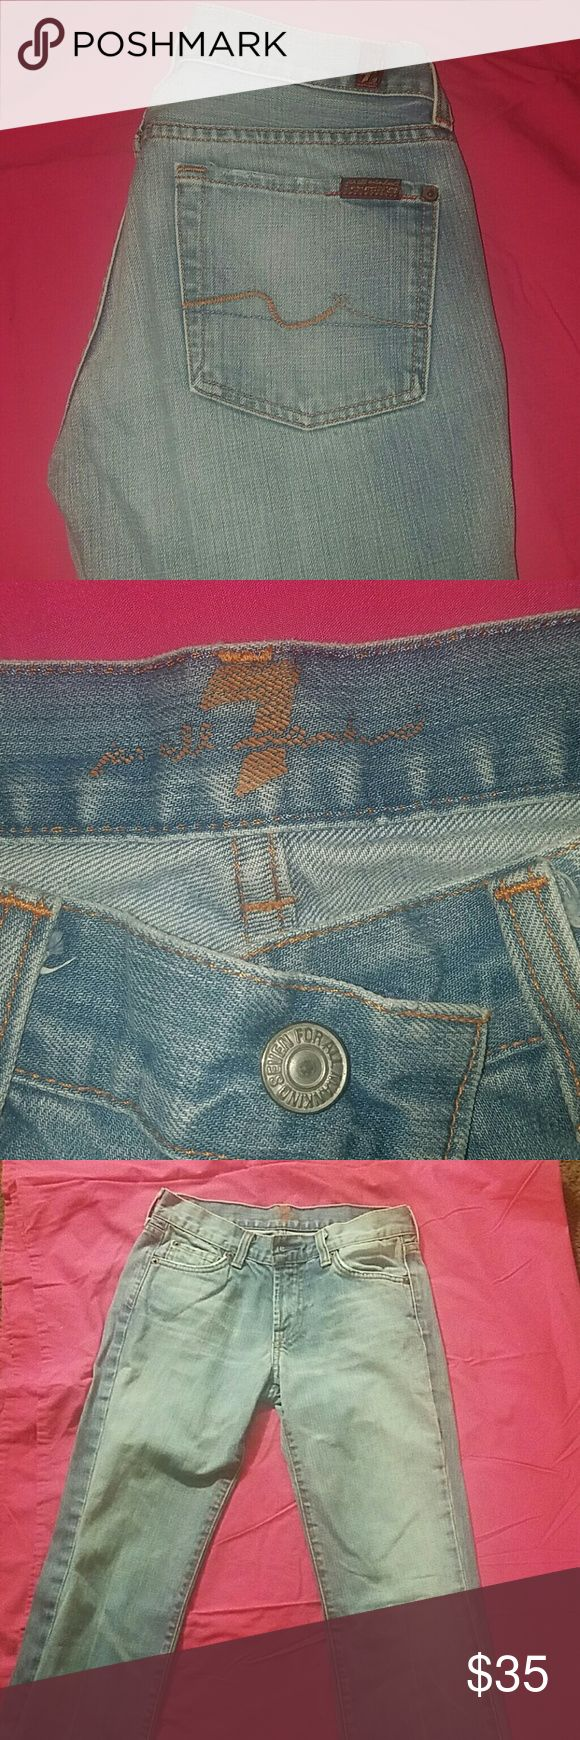 Jeans 7 for all mankind Women Jeans 7 For All Mankind Jeans Boot Cut